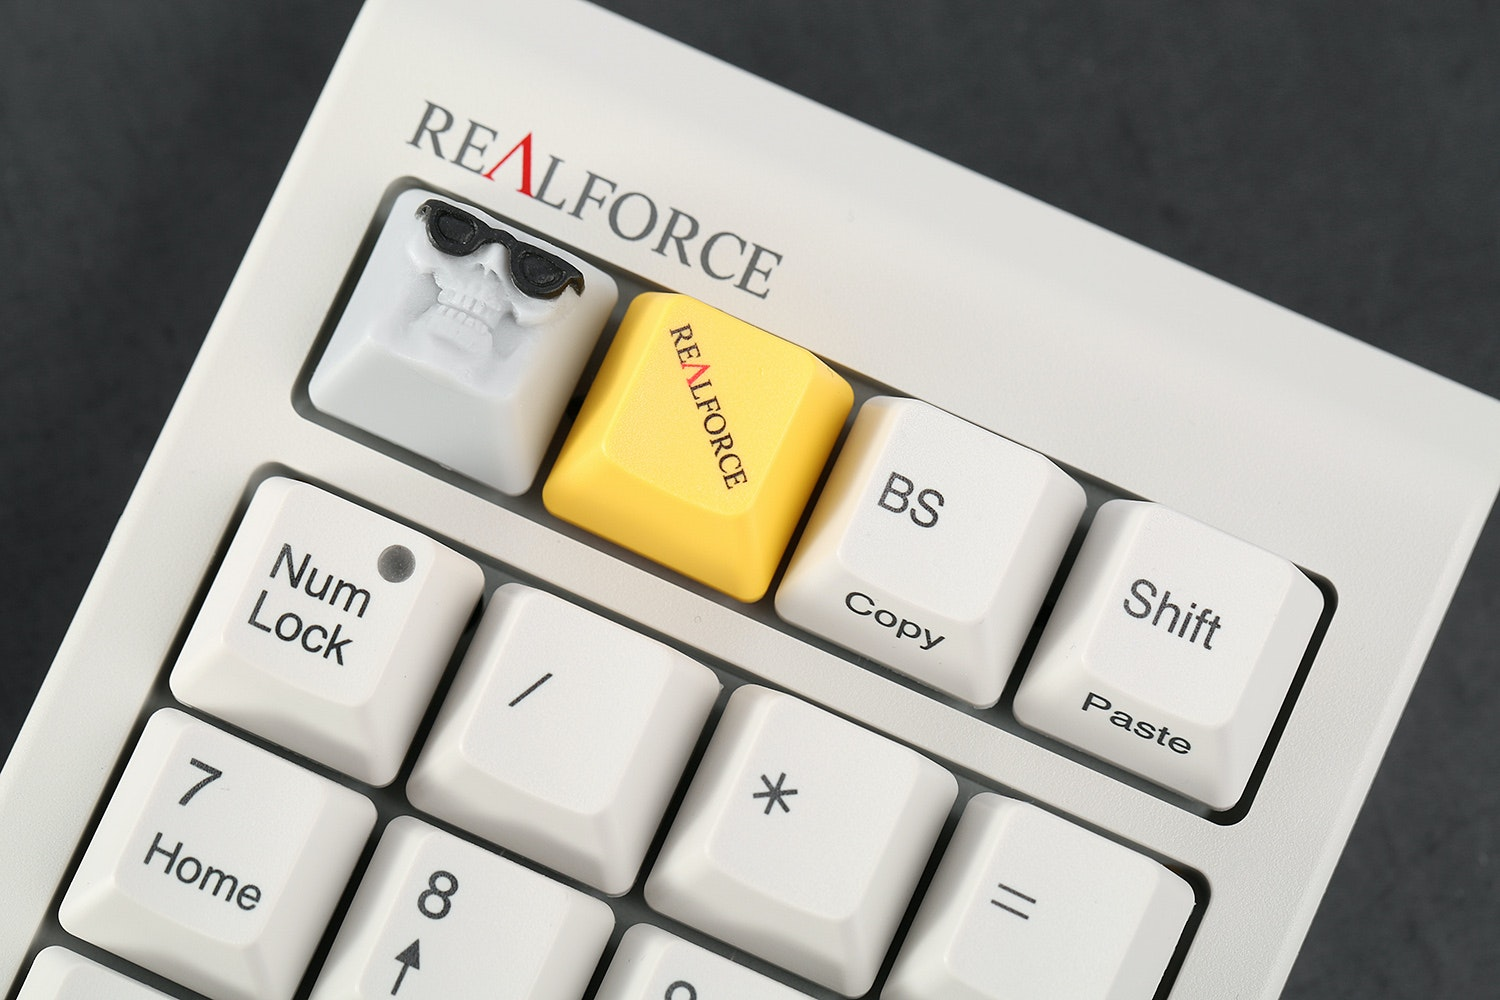 Topre Realforce Numpad with Custom Bingecap